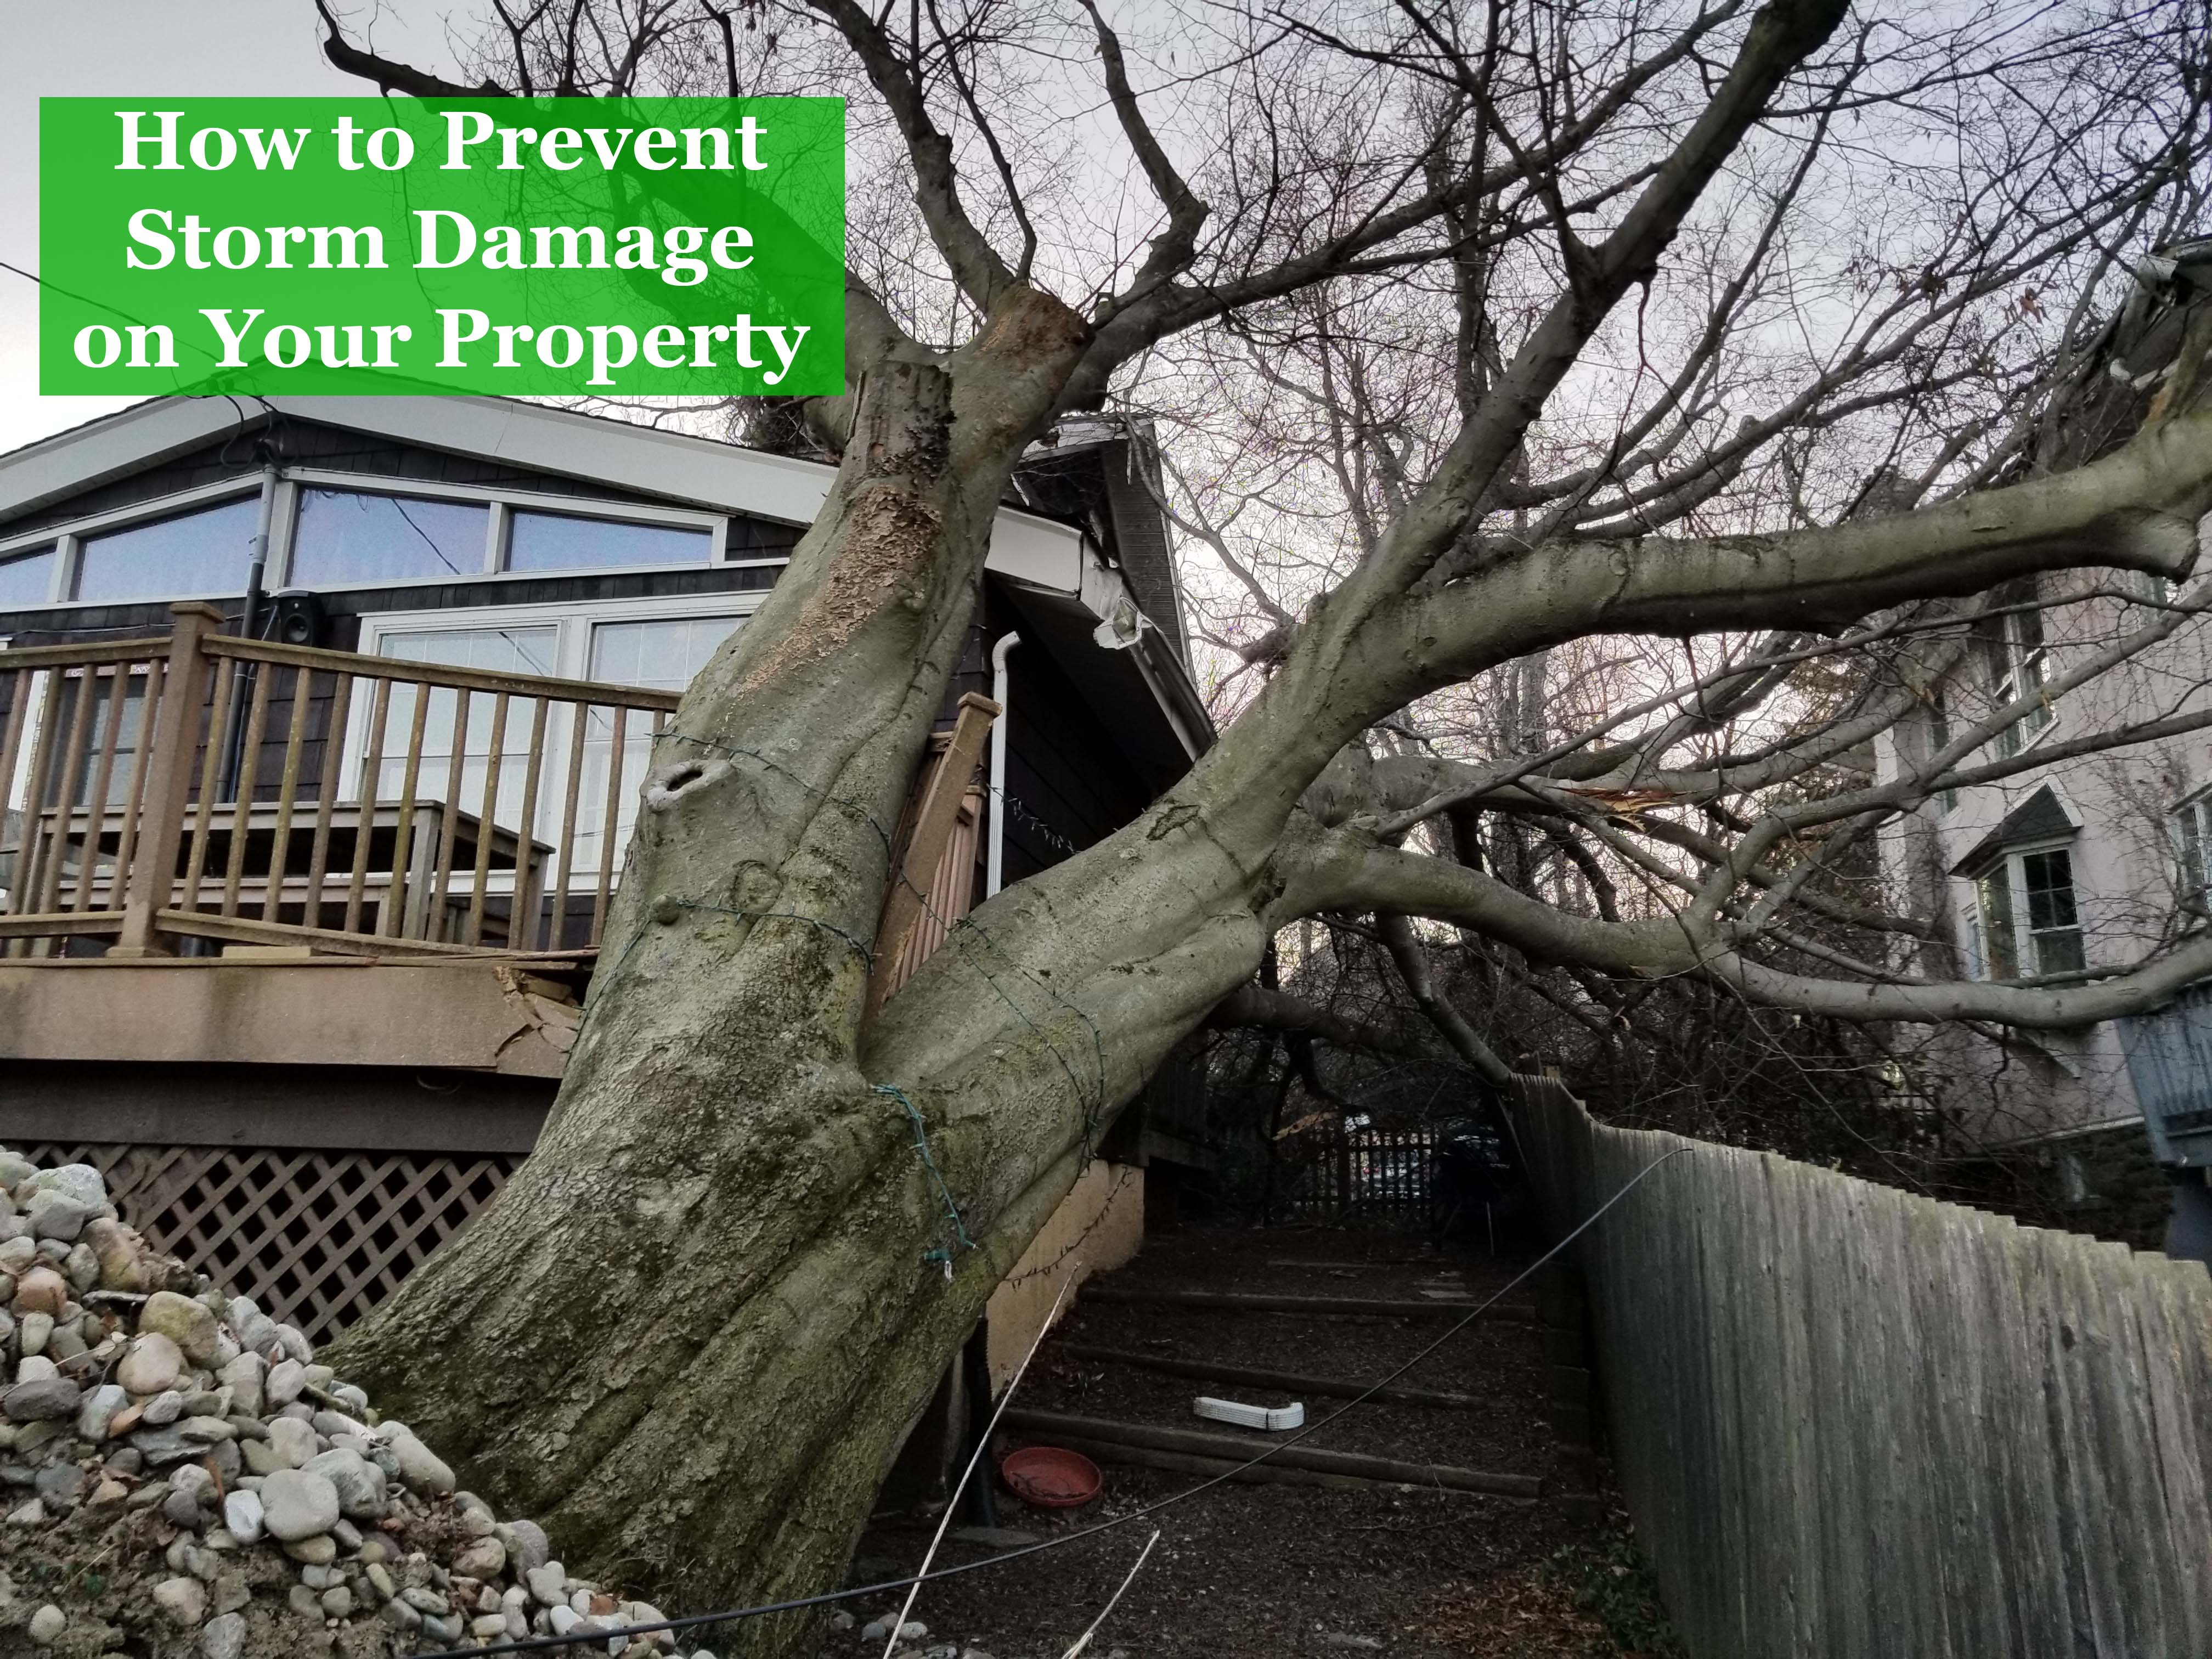 How to prevent storm damage on your property